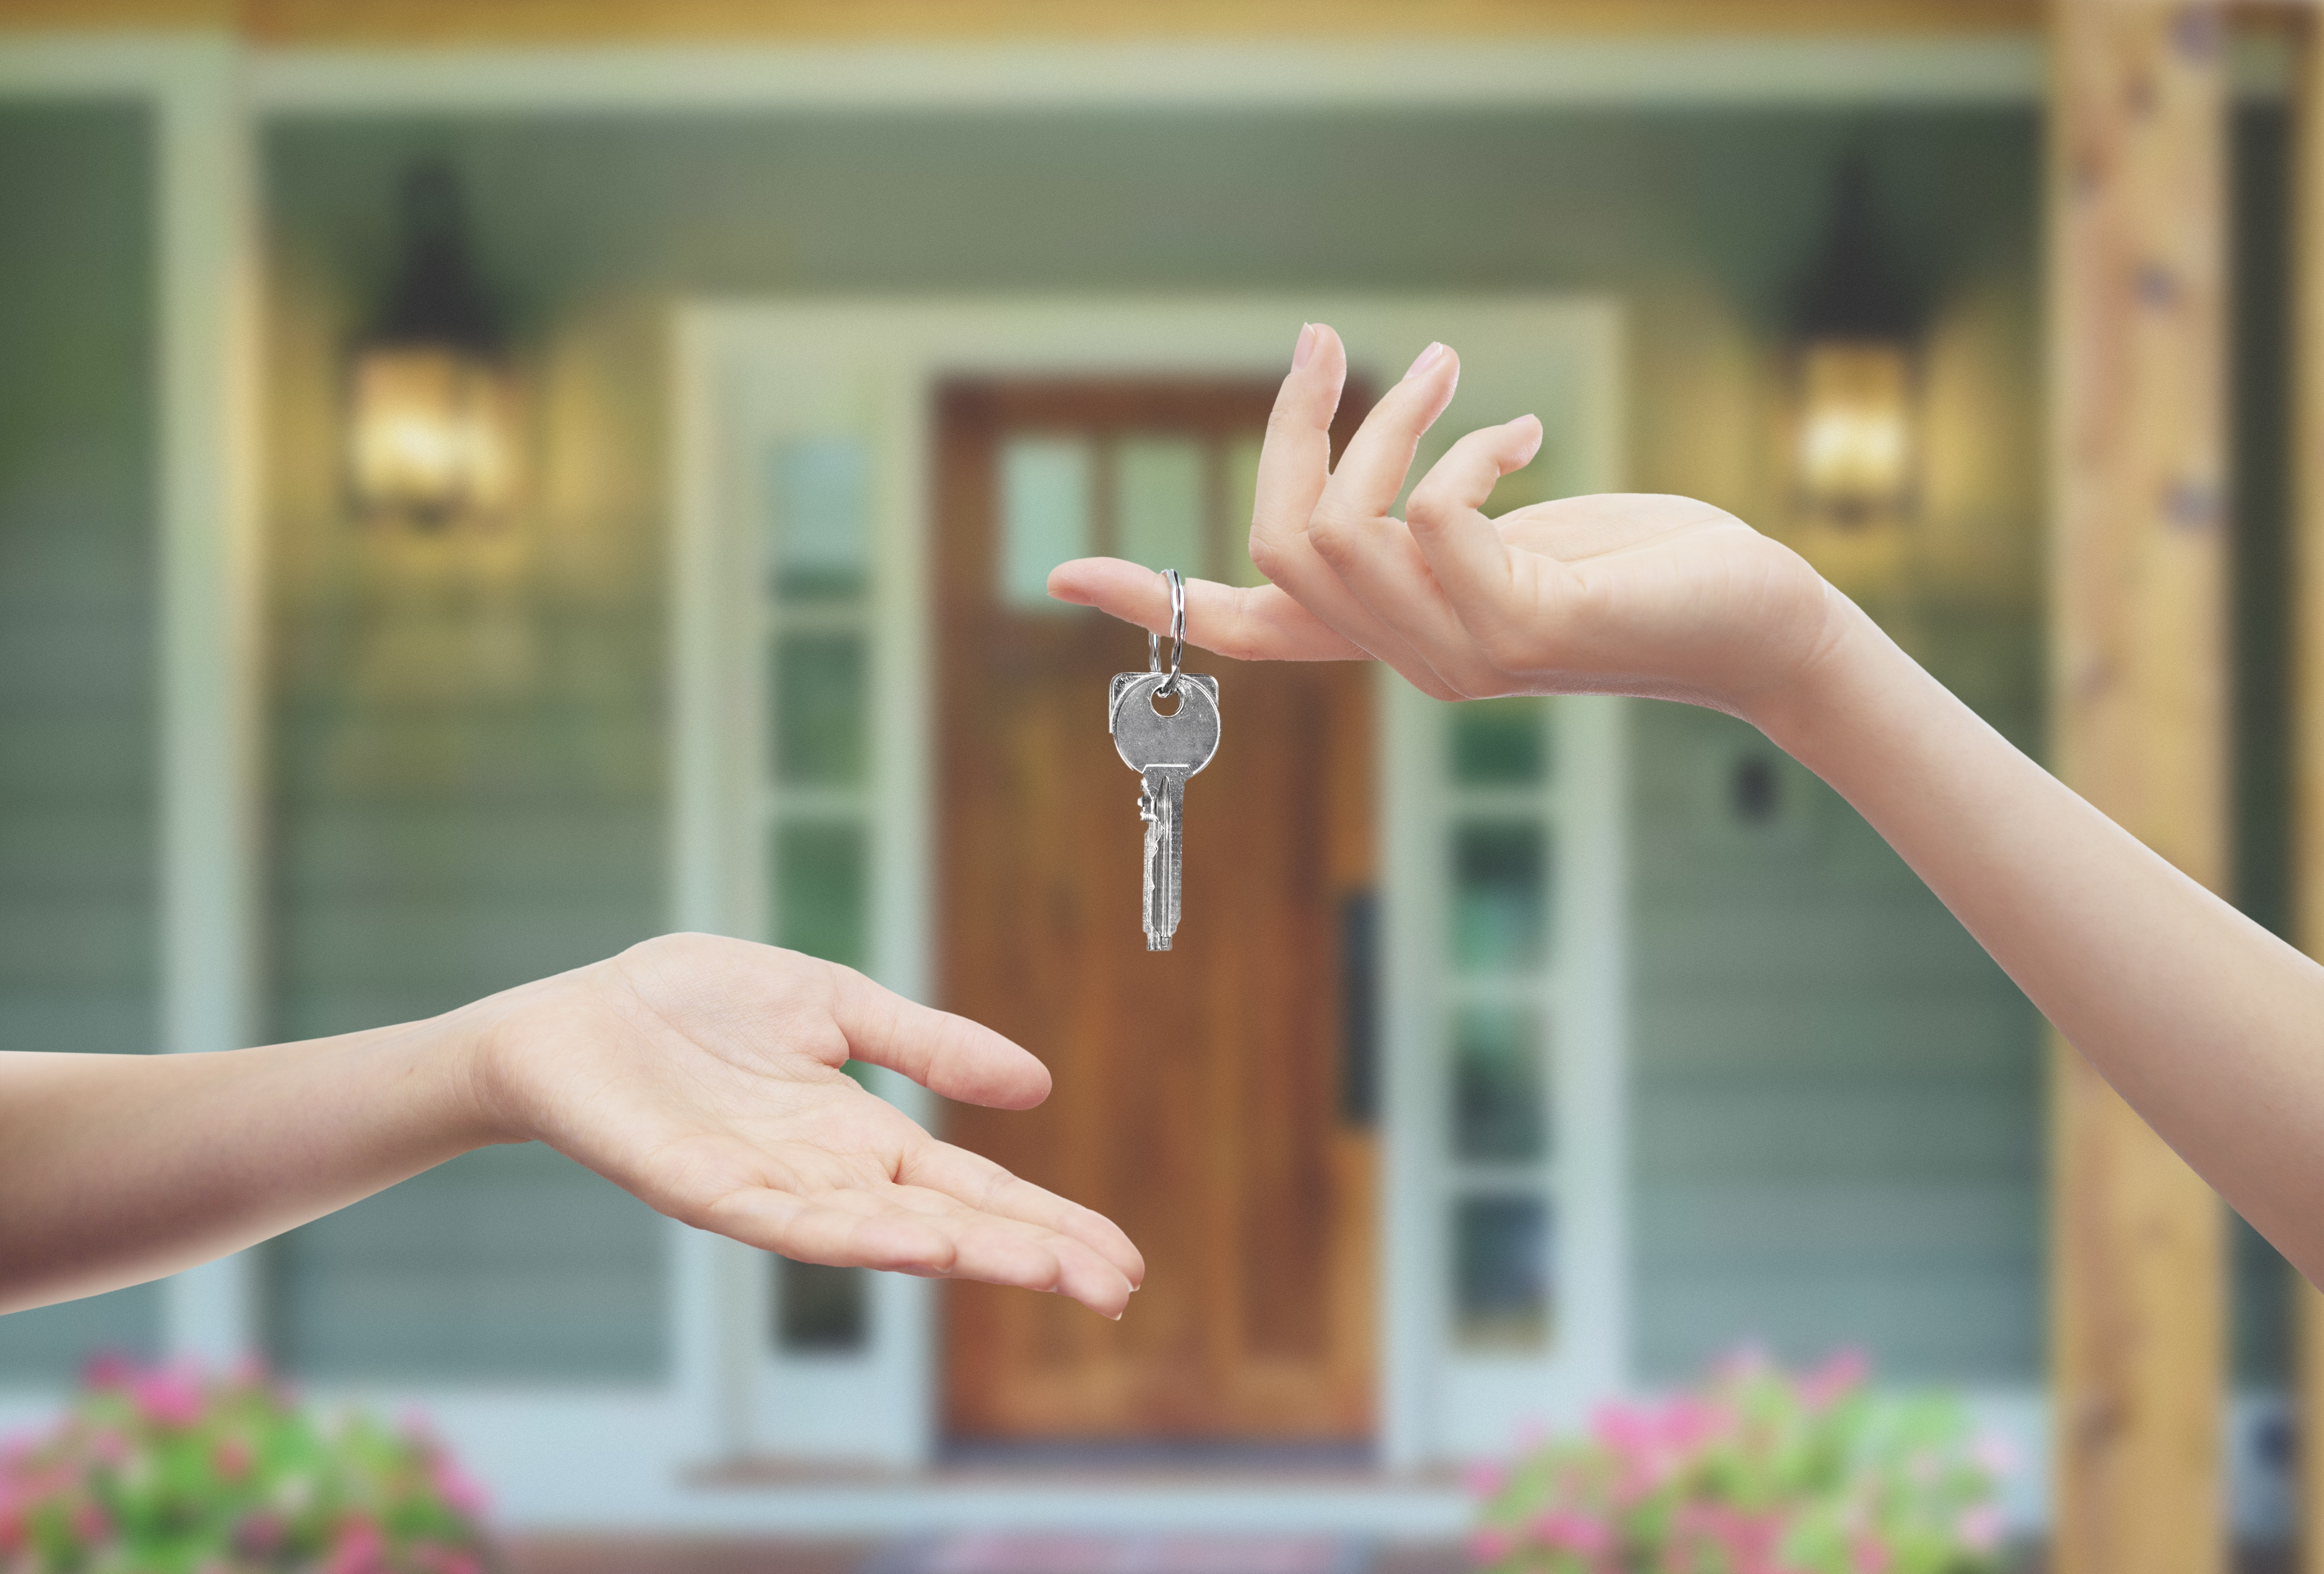 Pre-approval for a home mortgage gives you the upper hand